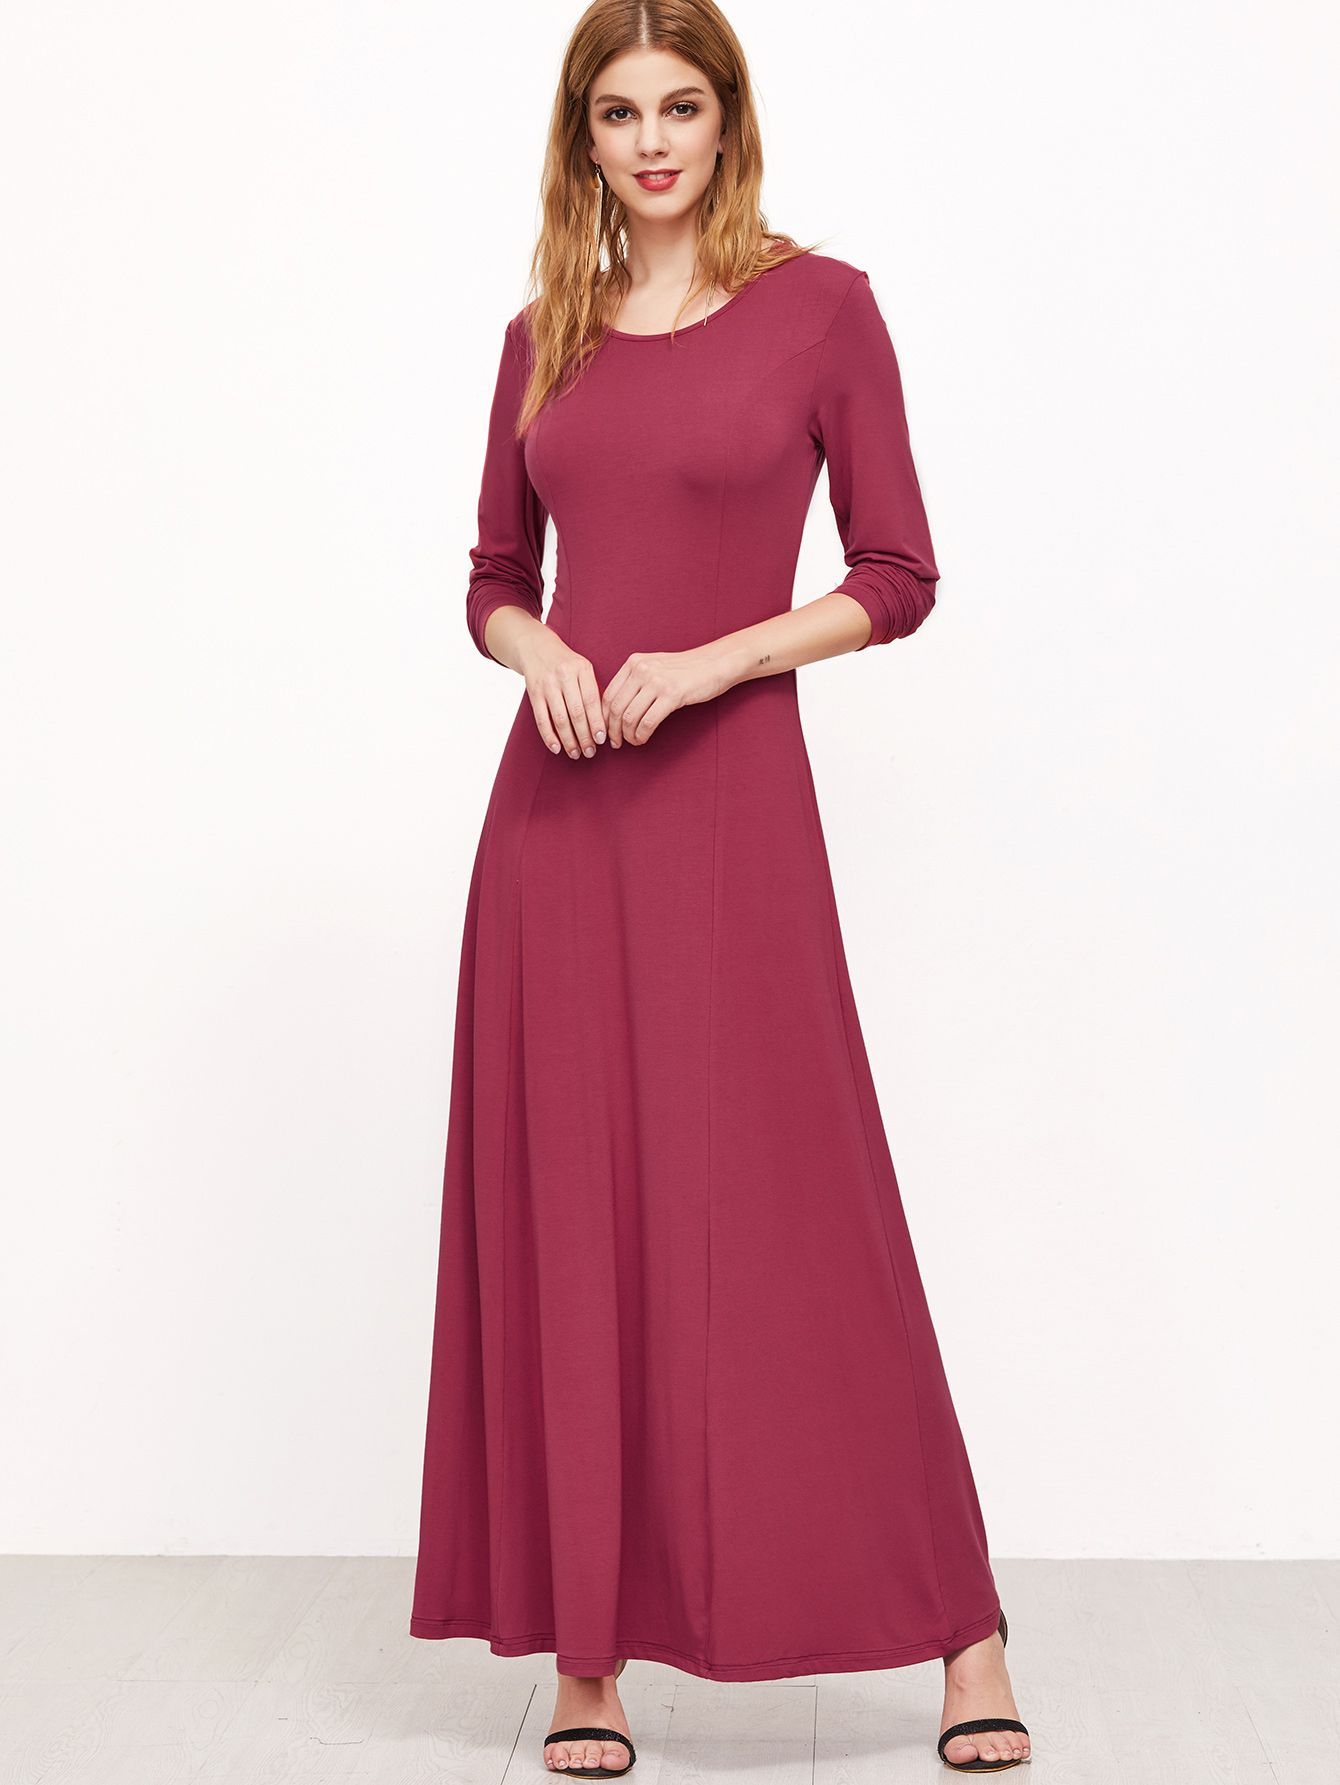 fdbaf23f6f Shop Hot Pink Long Sleeve A Line Maxi Dress online. SheIn offers Hot Pink  Long Sleeve A Line Maxi Dress & more to fit your fashionable needs.